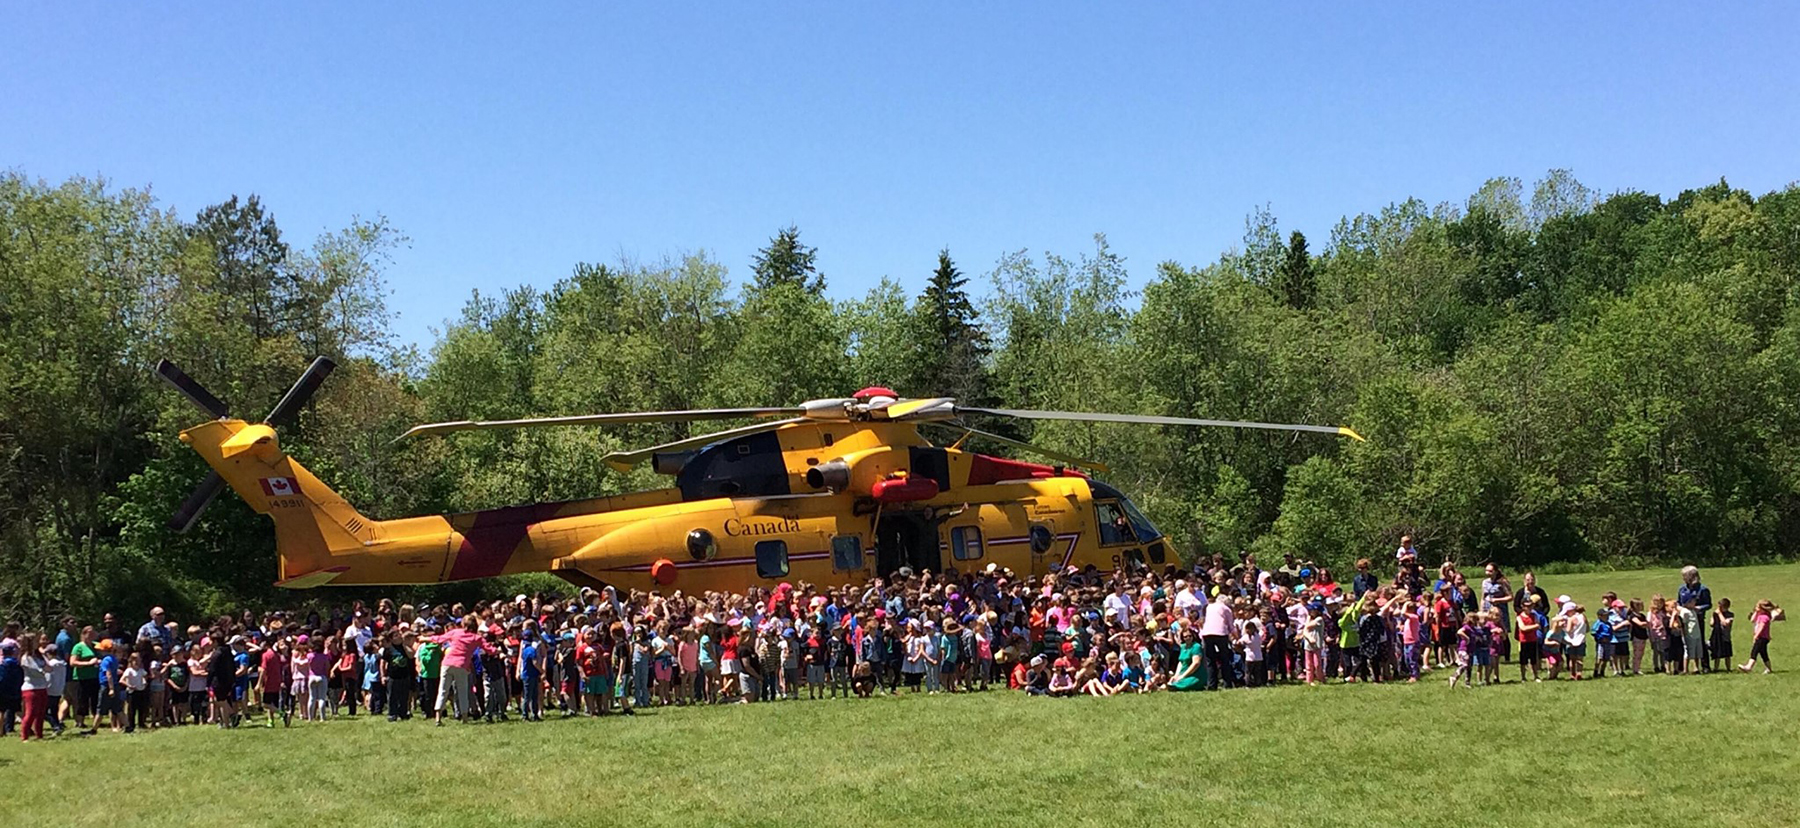 Under a clear blue sky, a very large group of children and a few adults gather in front of a large yellow helicopter sitting in a field, with trees in the background.